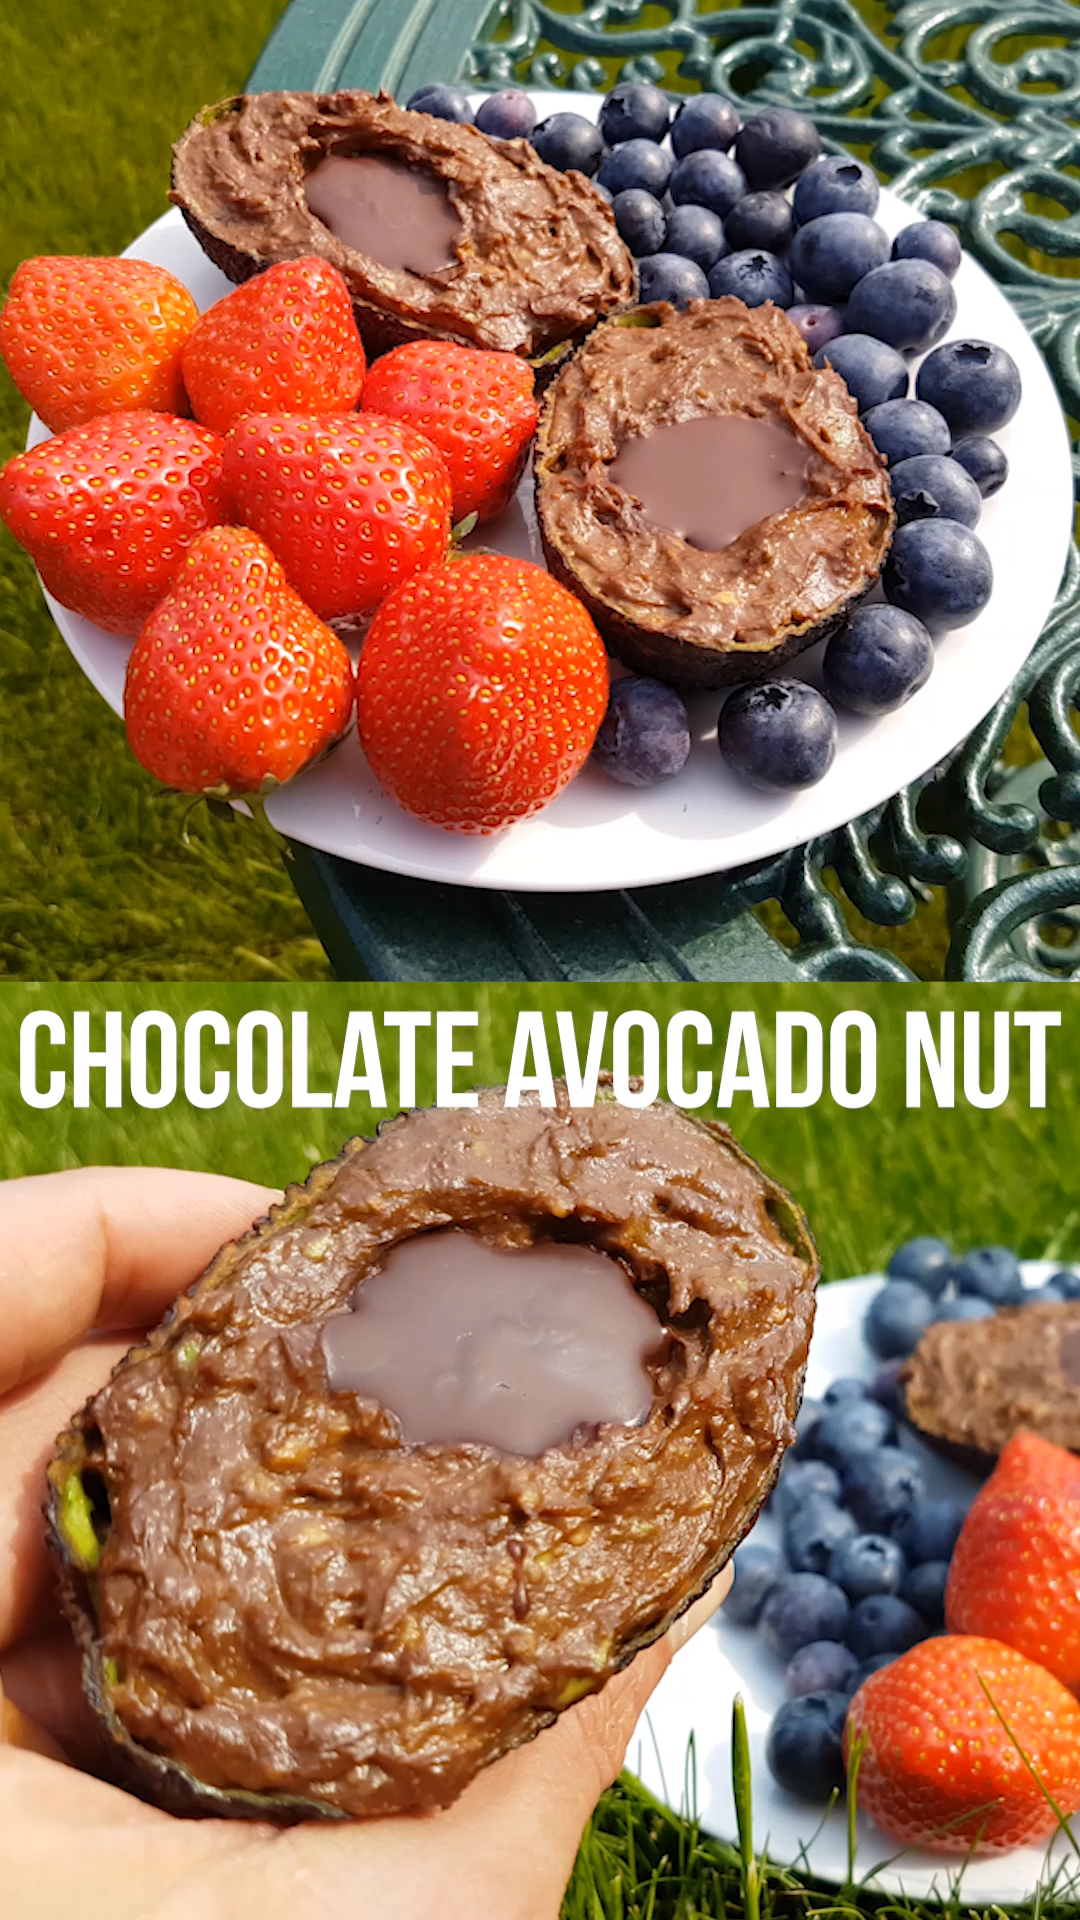 Easy to make heart-healthy dairy free pudding made from just avocado, nut butter and chocolate. Use